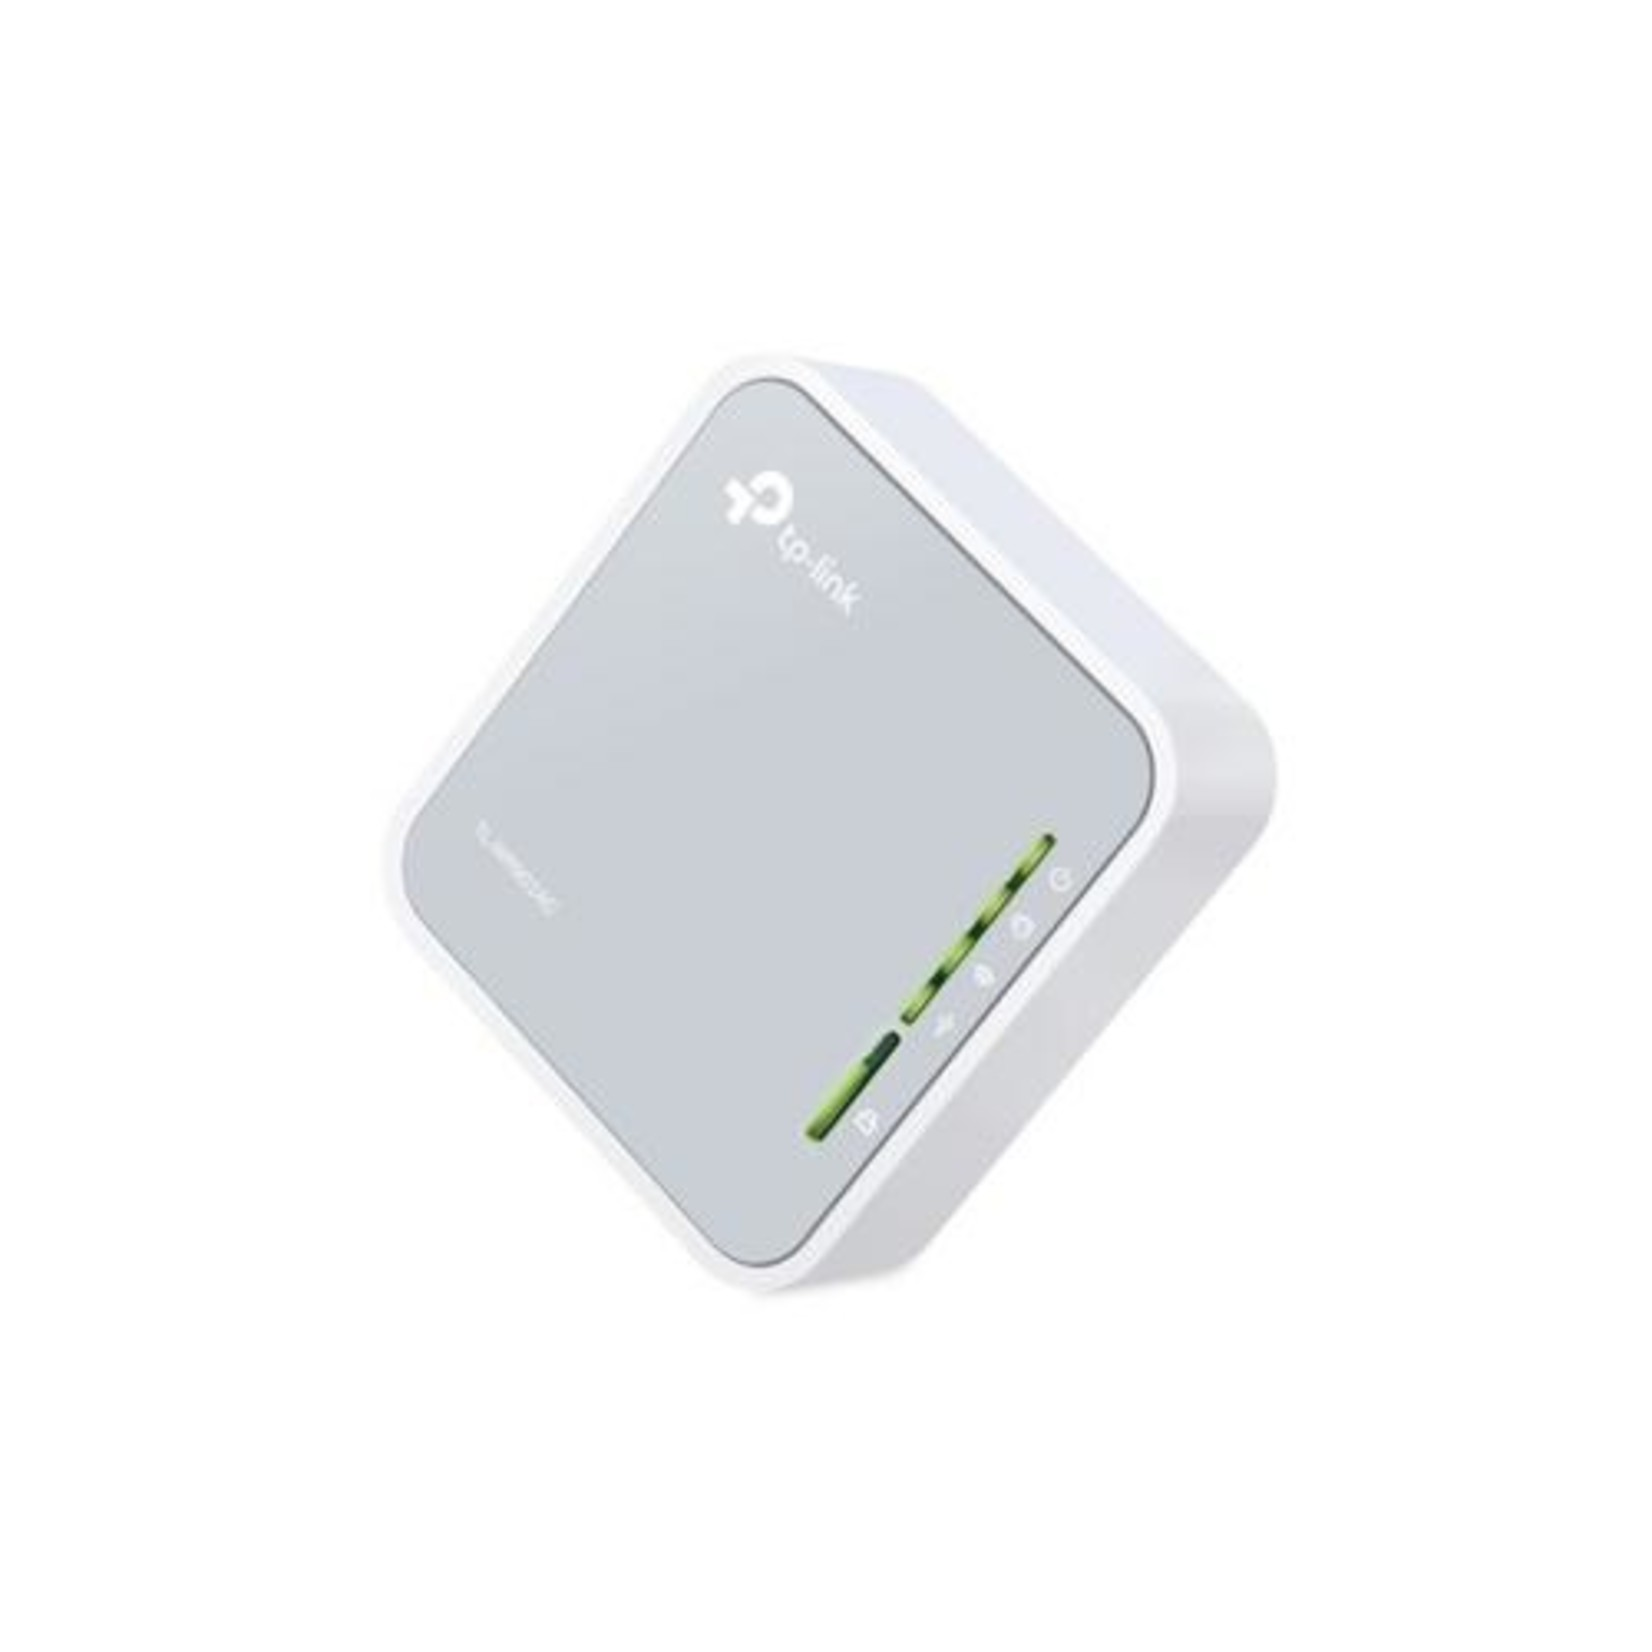 TP-Link TL-WR902AC 1PSW 750Mbps Mini Router (refurbished)